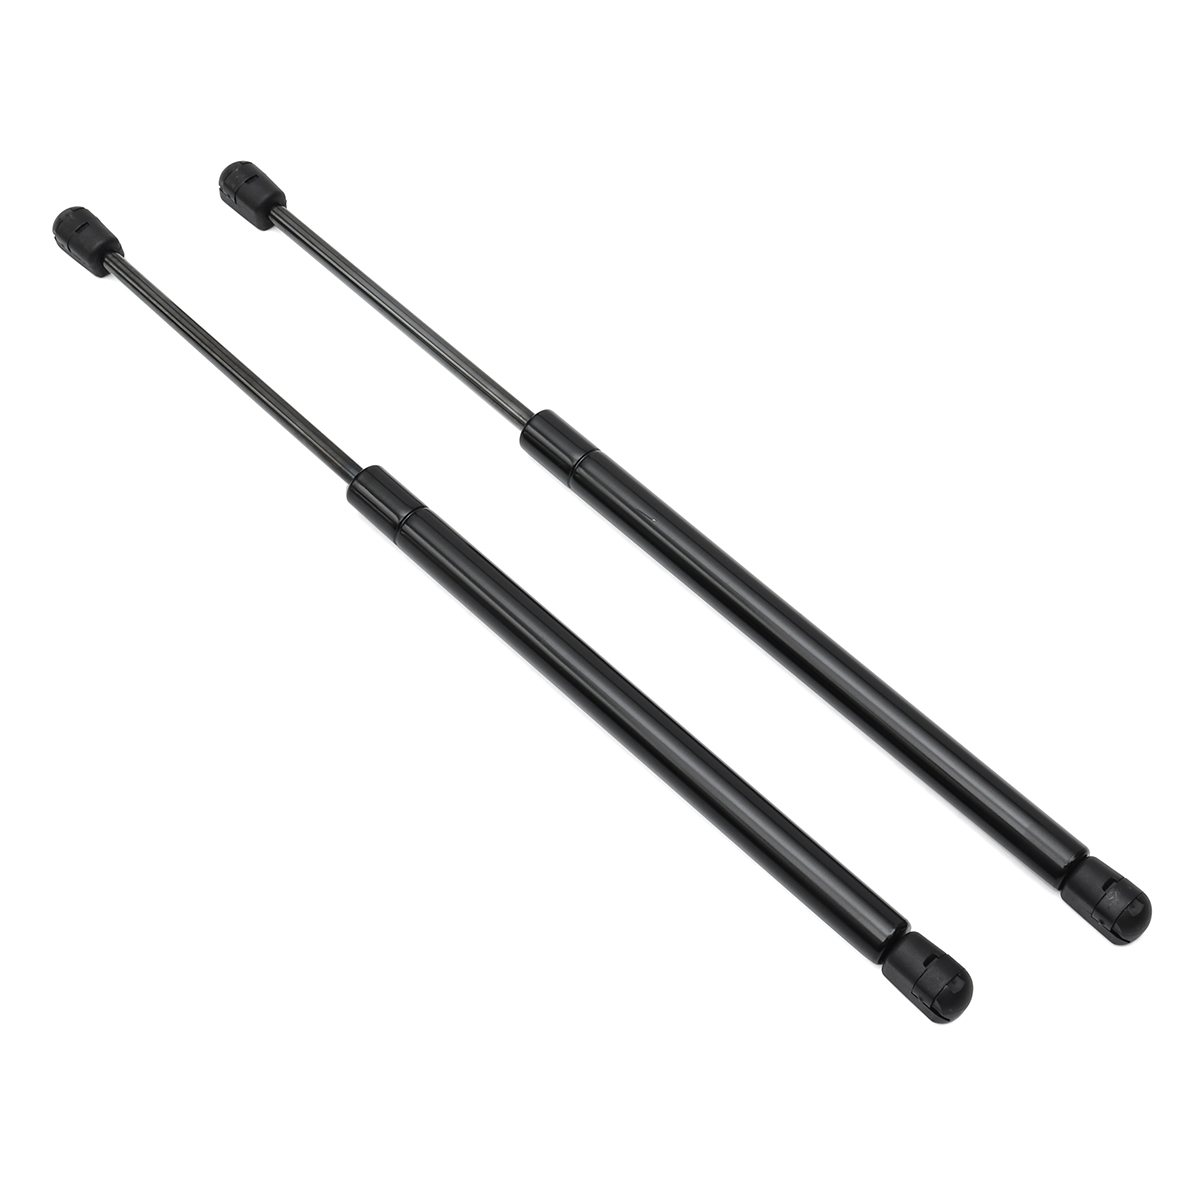 Pair Front Hood Lift Support Damper For Ford Excursion F 250 350 450 550 99 07